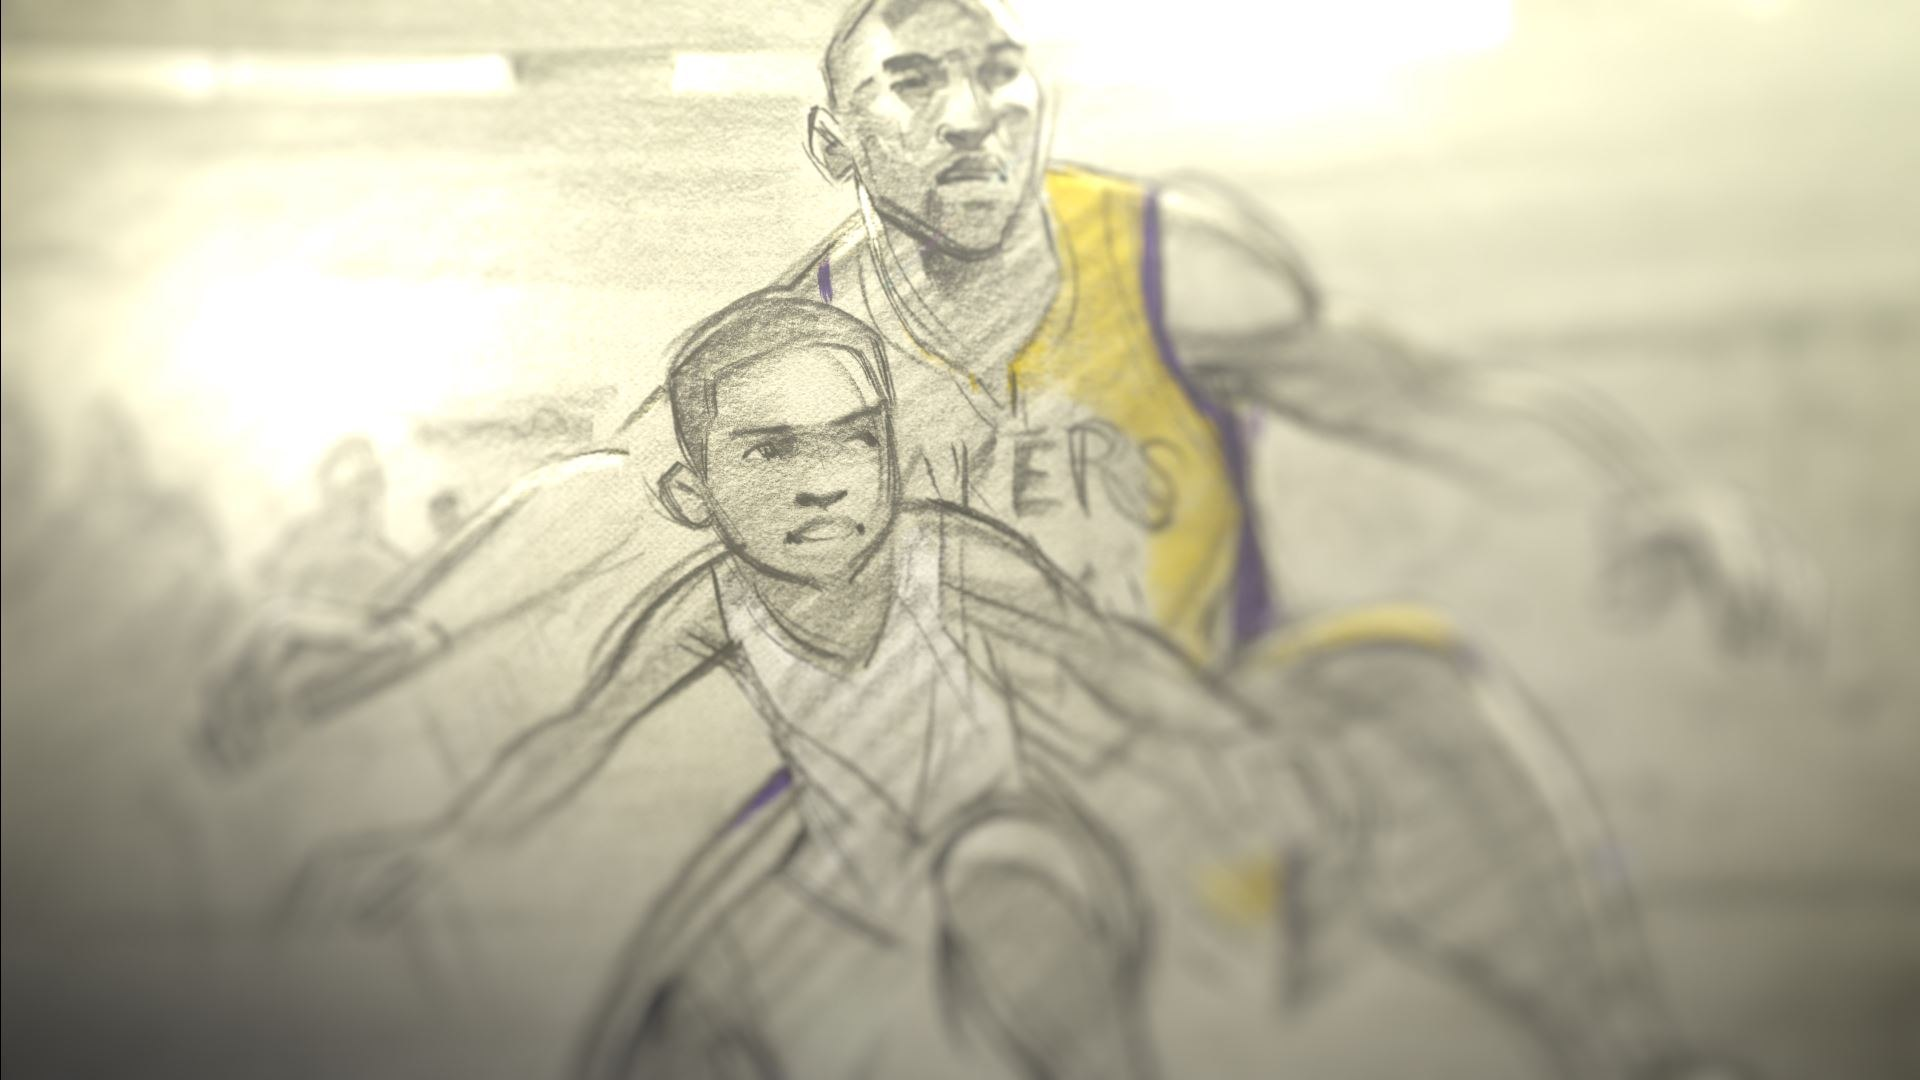 Glen Keane Soars in 'Dear Basketball' | Animation World Network